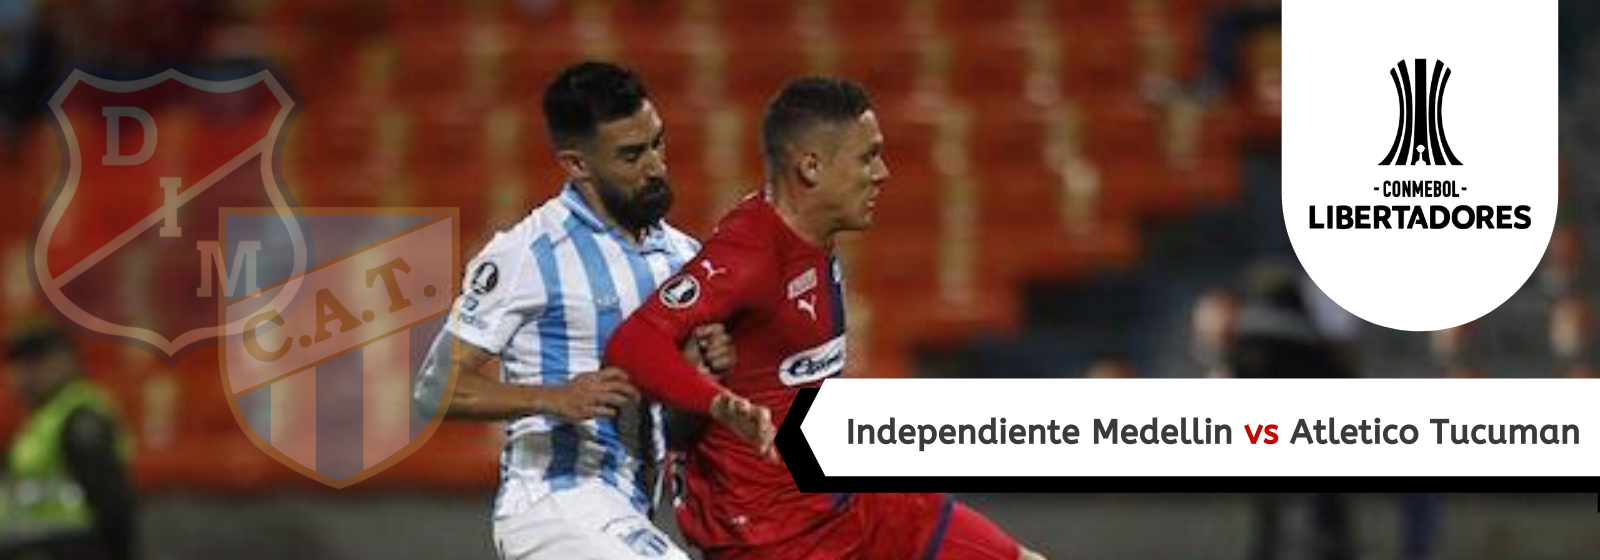 Asianconnect: Independiente Medellin (Colombia) vs Atletico Tucuman (Argentina) Odds for February 18, 2020